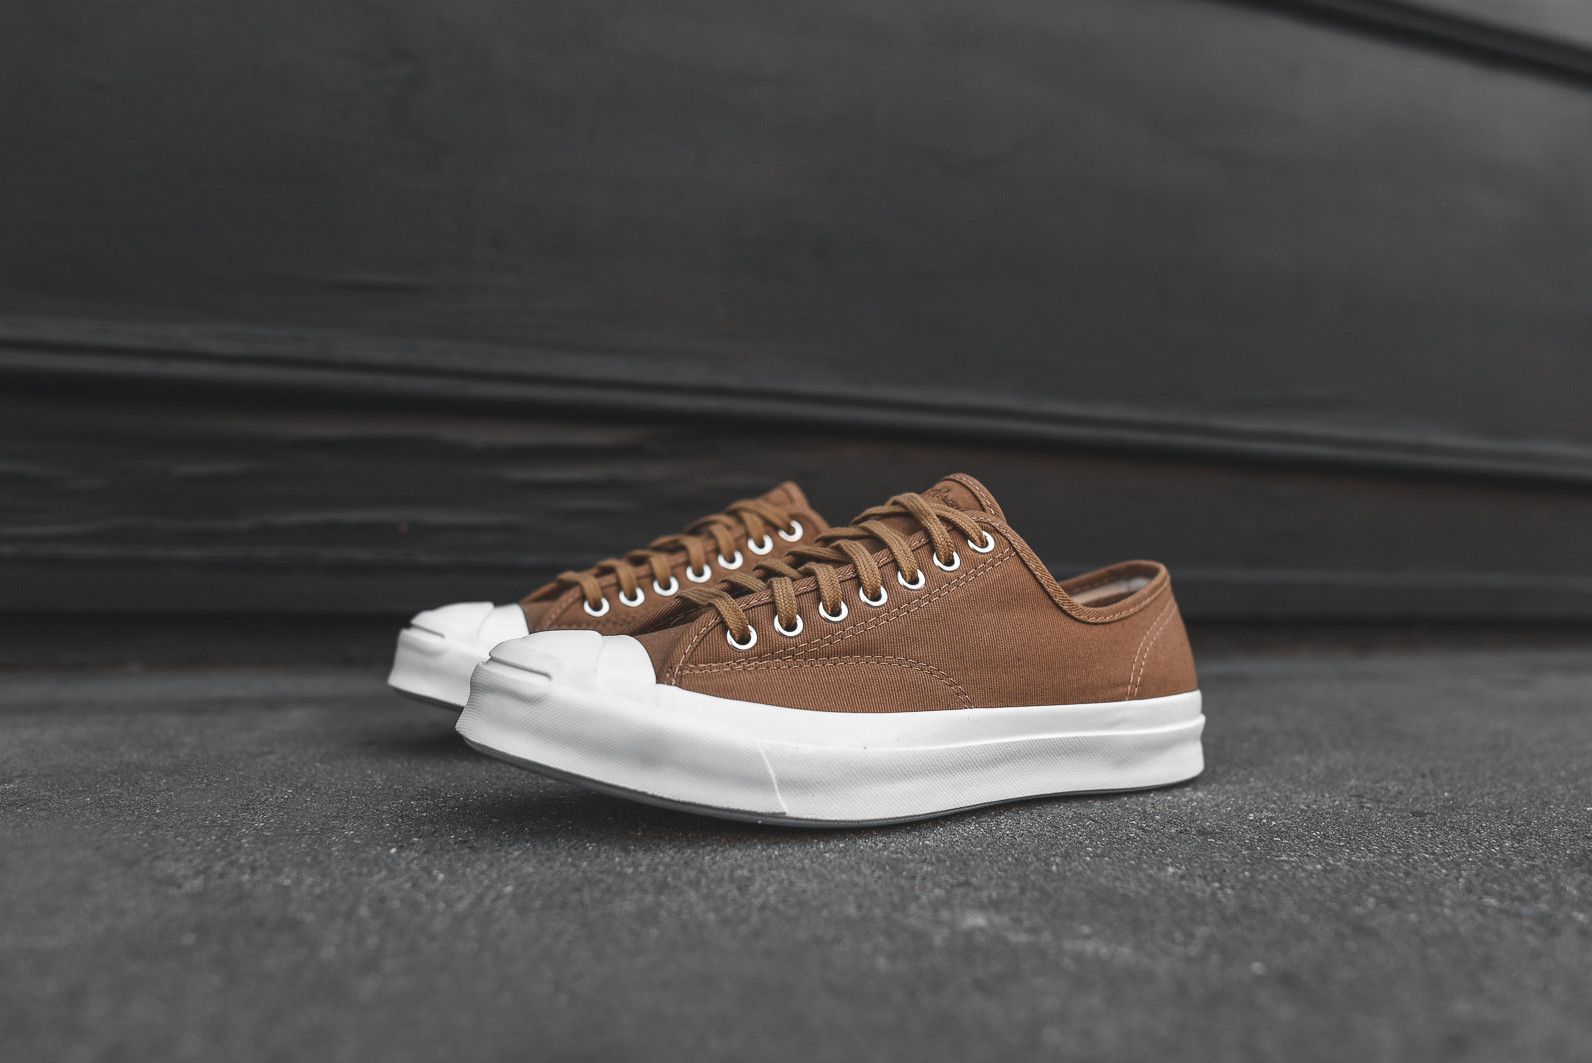 a5b2a5084fb7ce Converse Jack Purcell Signature - Sand Dune